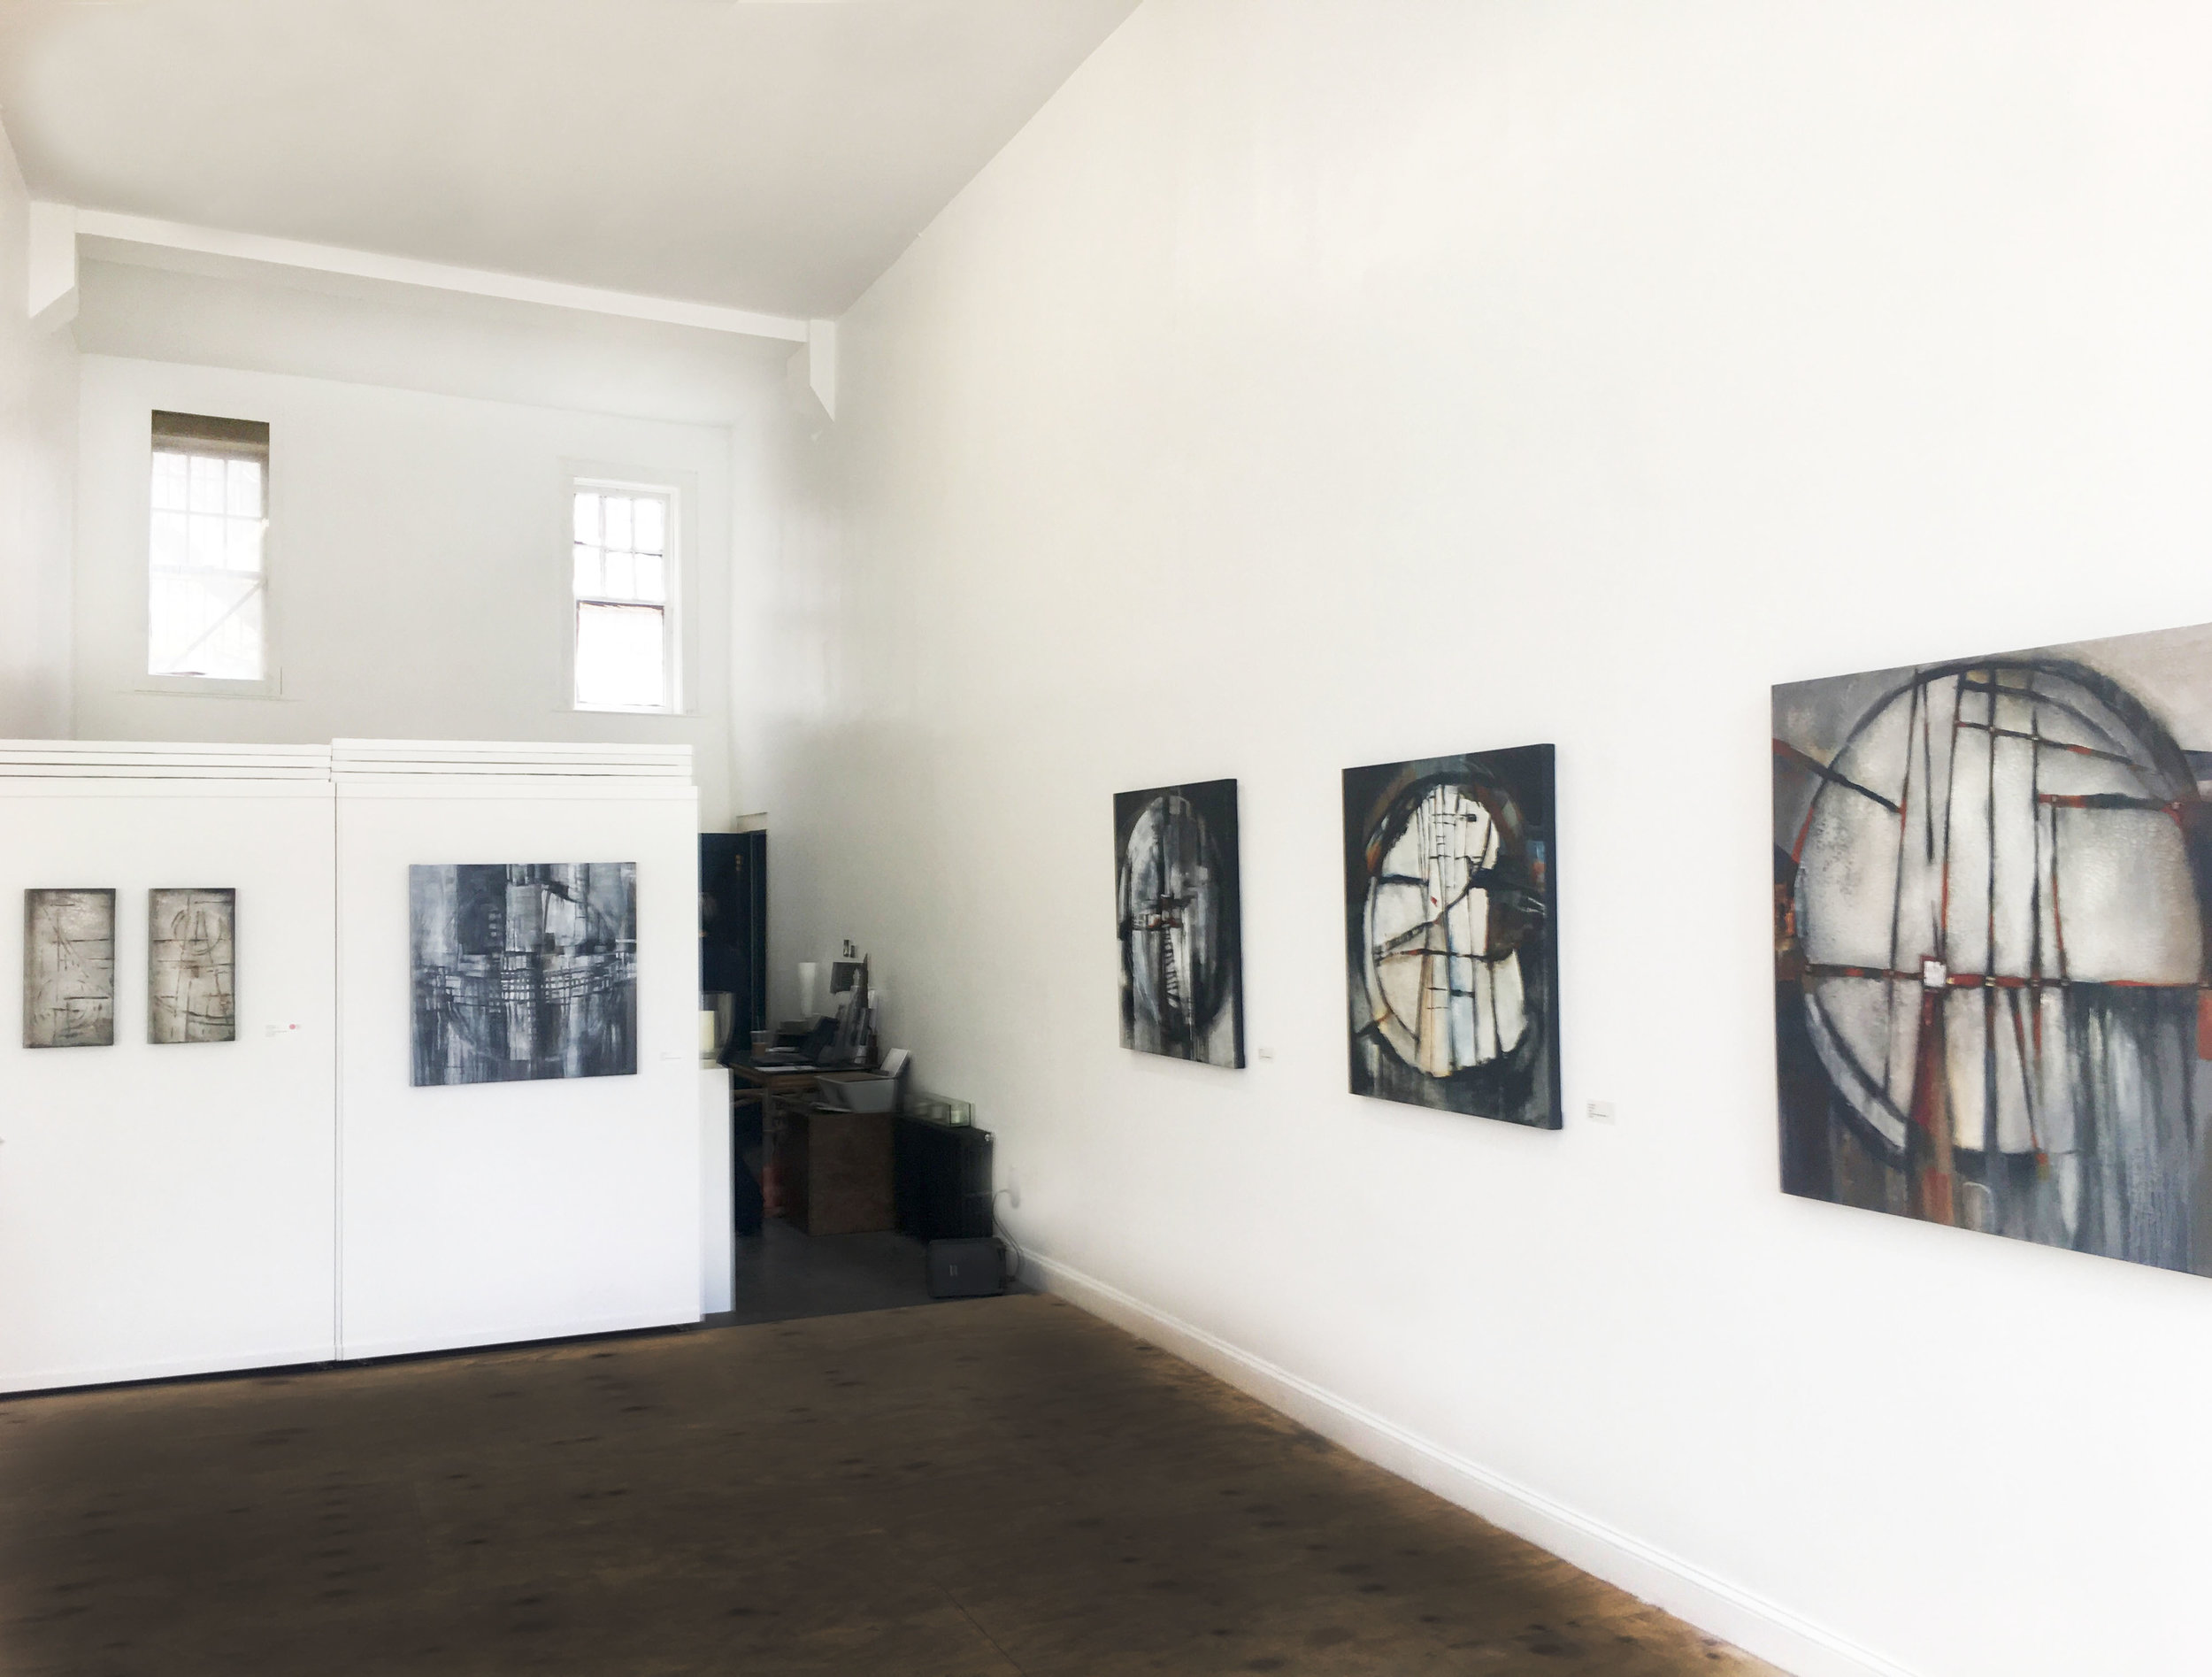 Exhibition at ovoEDGE Gallery